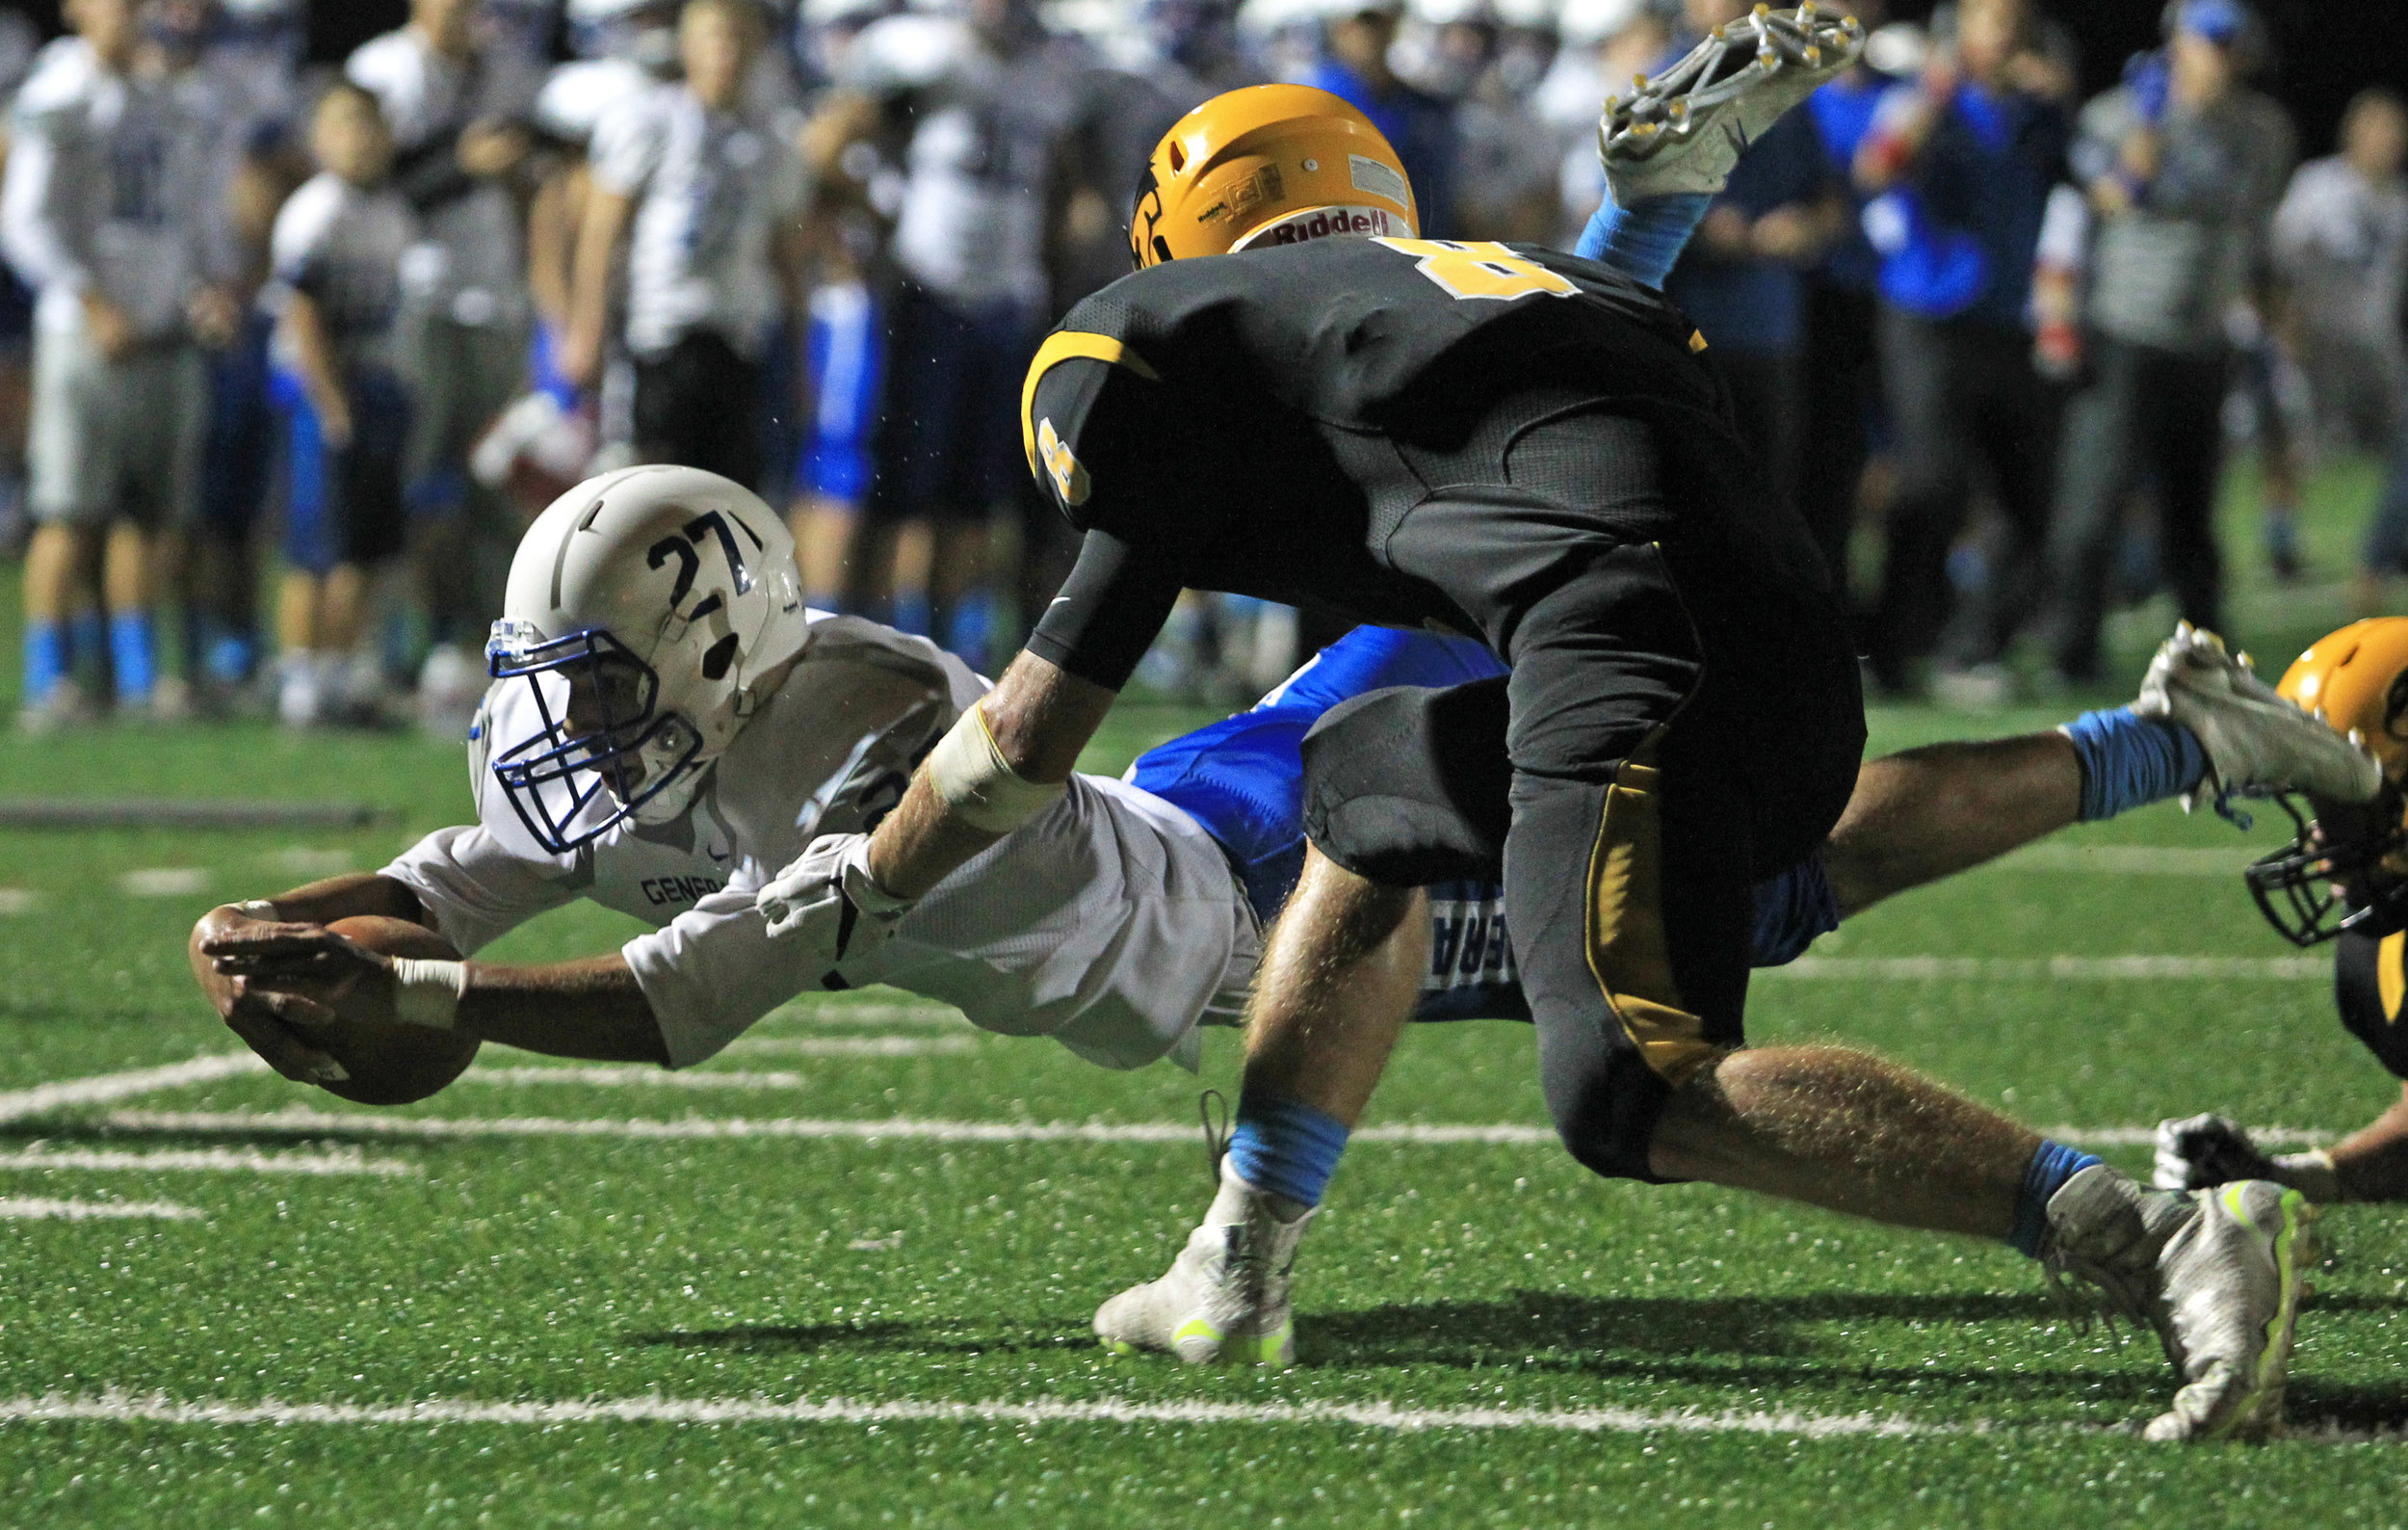 Anthony Wayne junior running back Max Guitteau dives just short of the end zone while under coverage from Northview High School defensive back Cam Corron during the game at Northview High School in Sylvania on Friday, Sept. 16, 2016. Anthony Wayne High School won the game 35-14.